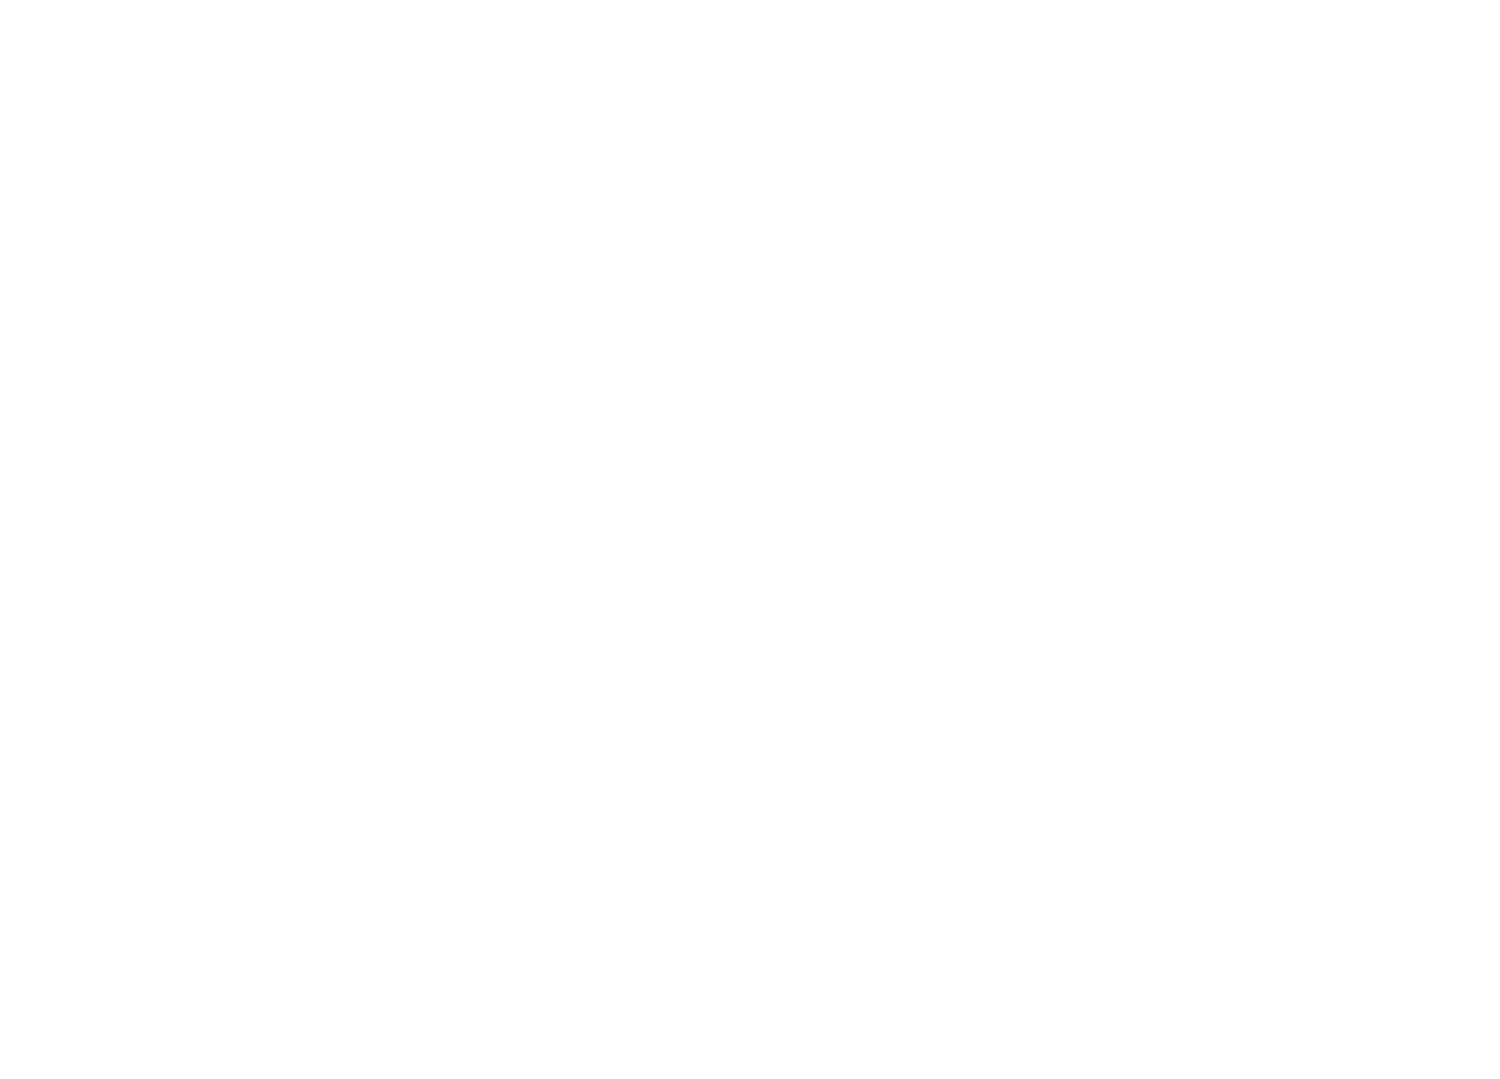 Vagabond Event Bar Company